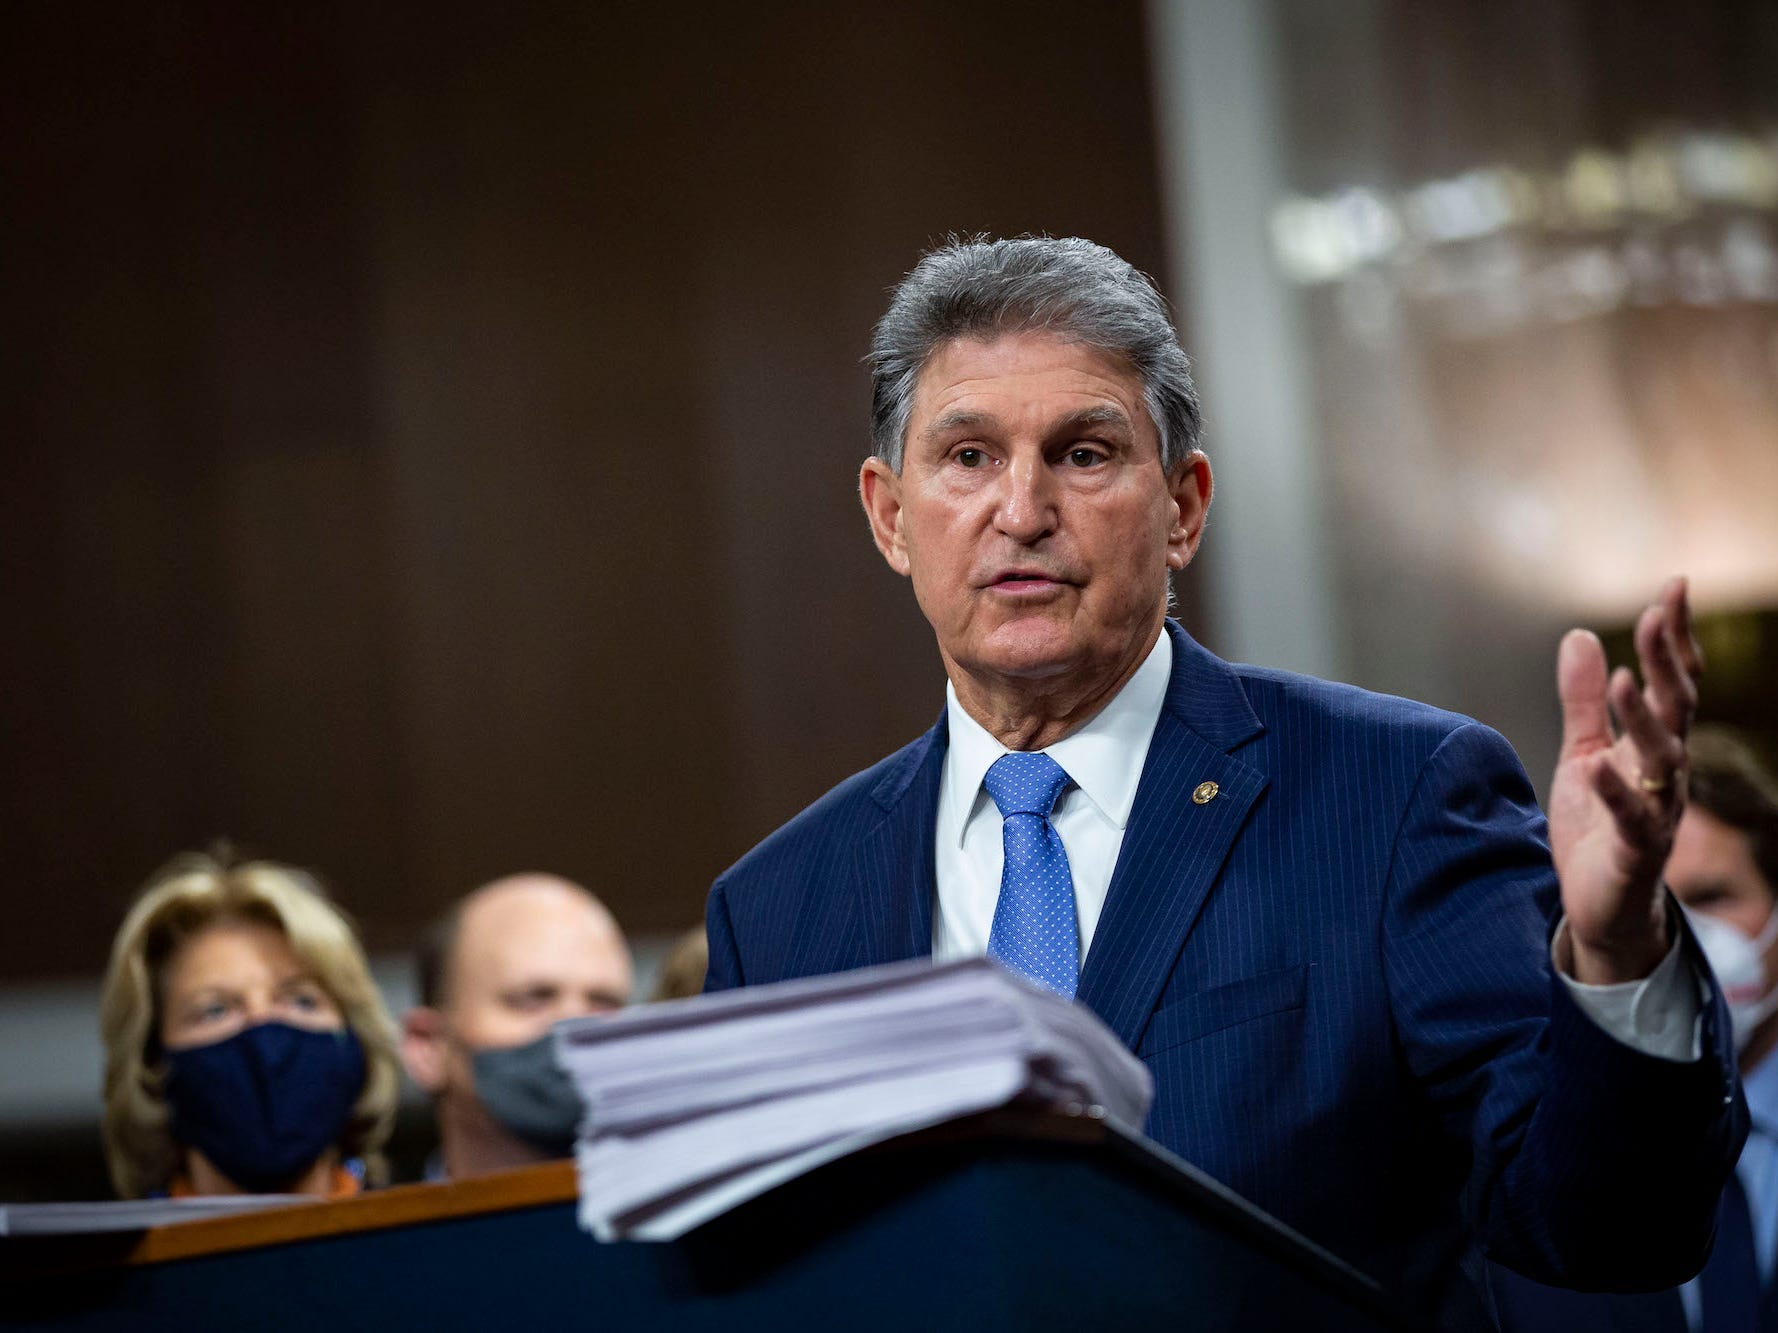 Joe Manchin poses a likelihood to raising the minimum wage, even supposing 250,000 West Virginians would maintain the profit of the prolong